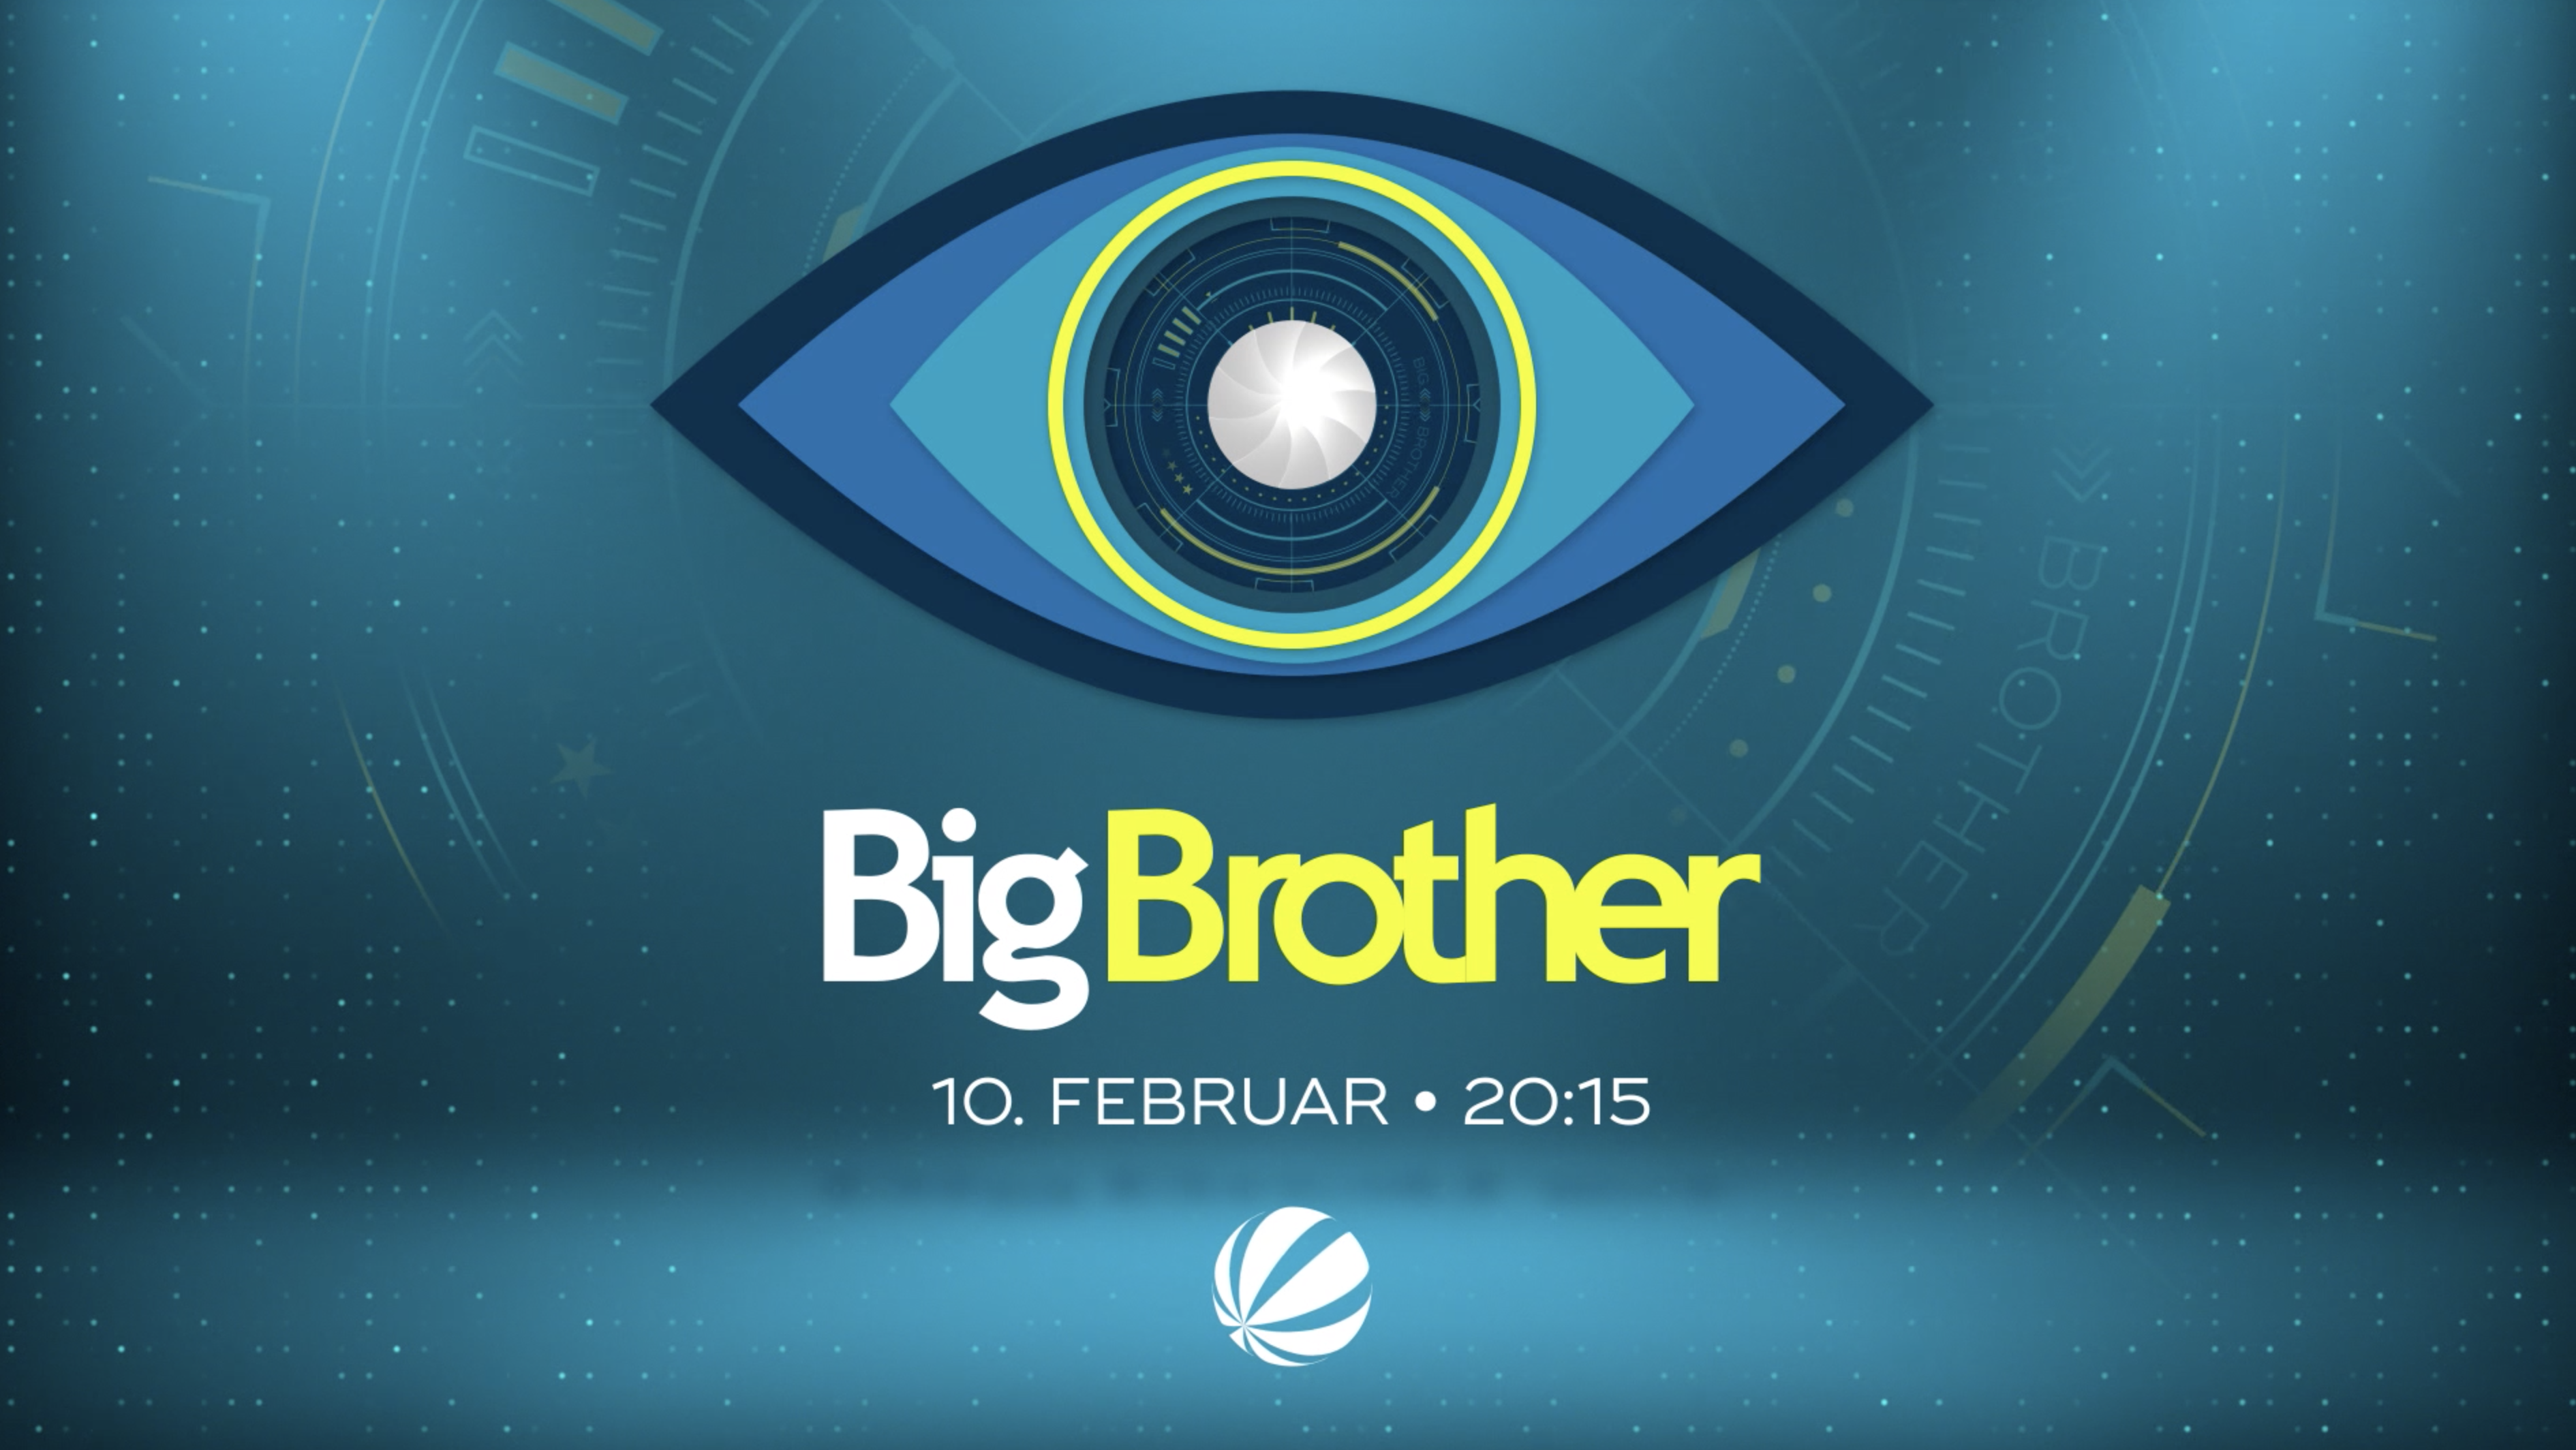 Big Brother 2020 Start